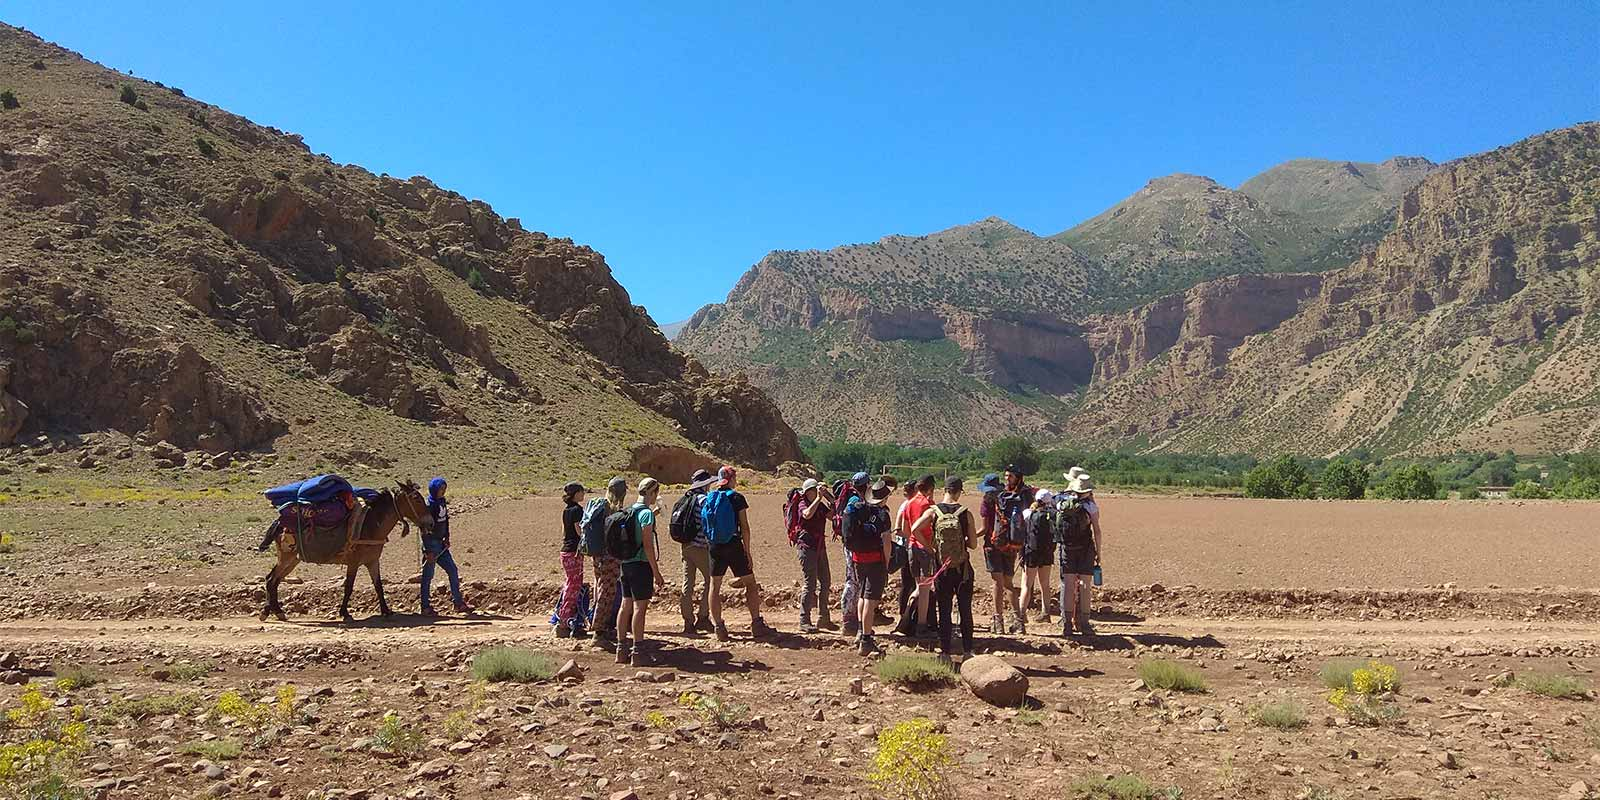 School group with mules and muleteer in Ait Bouguemez Valley in Atlas Mountains of Morocco